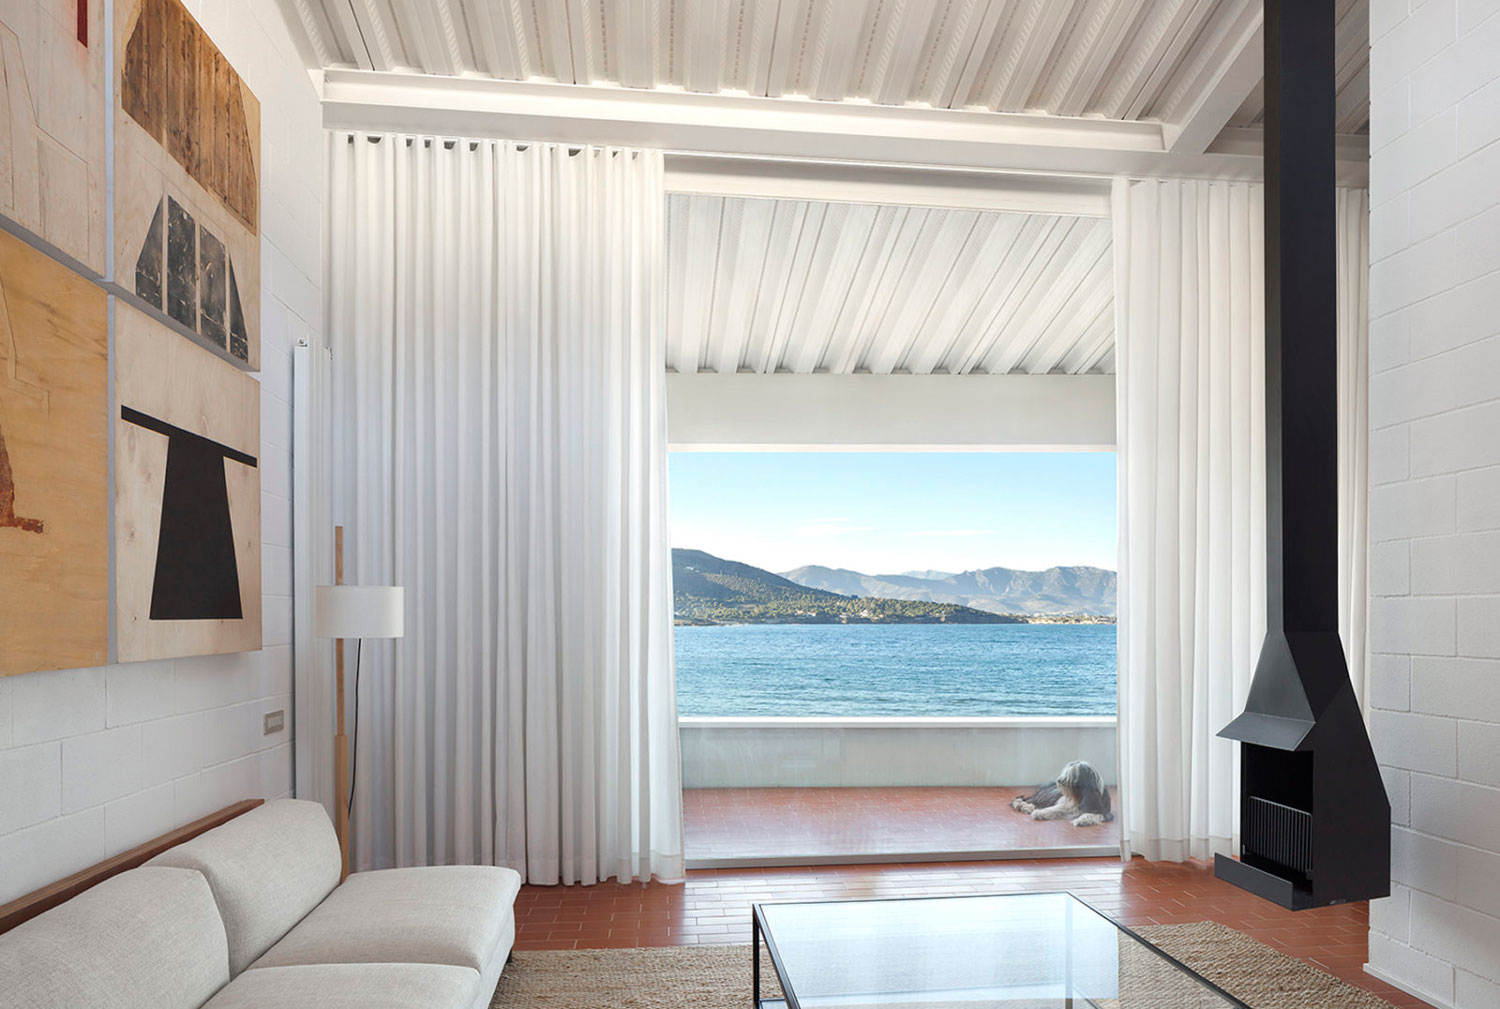 Seafront House in Port de la Selva Spain by OAB   Yellowtrace